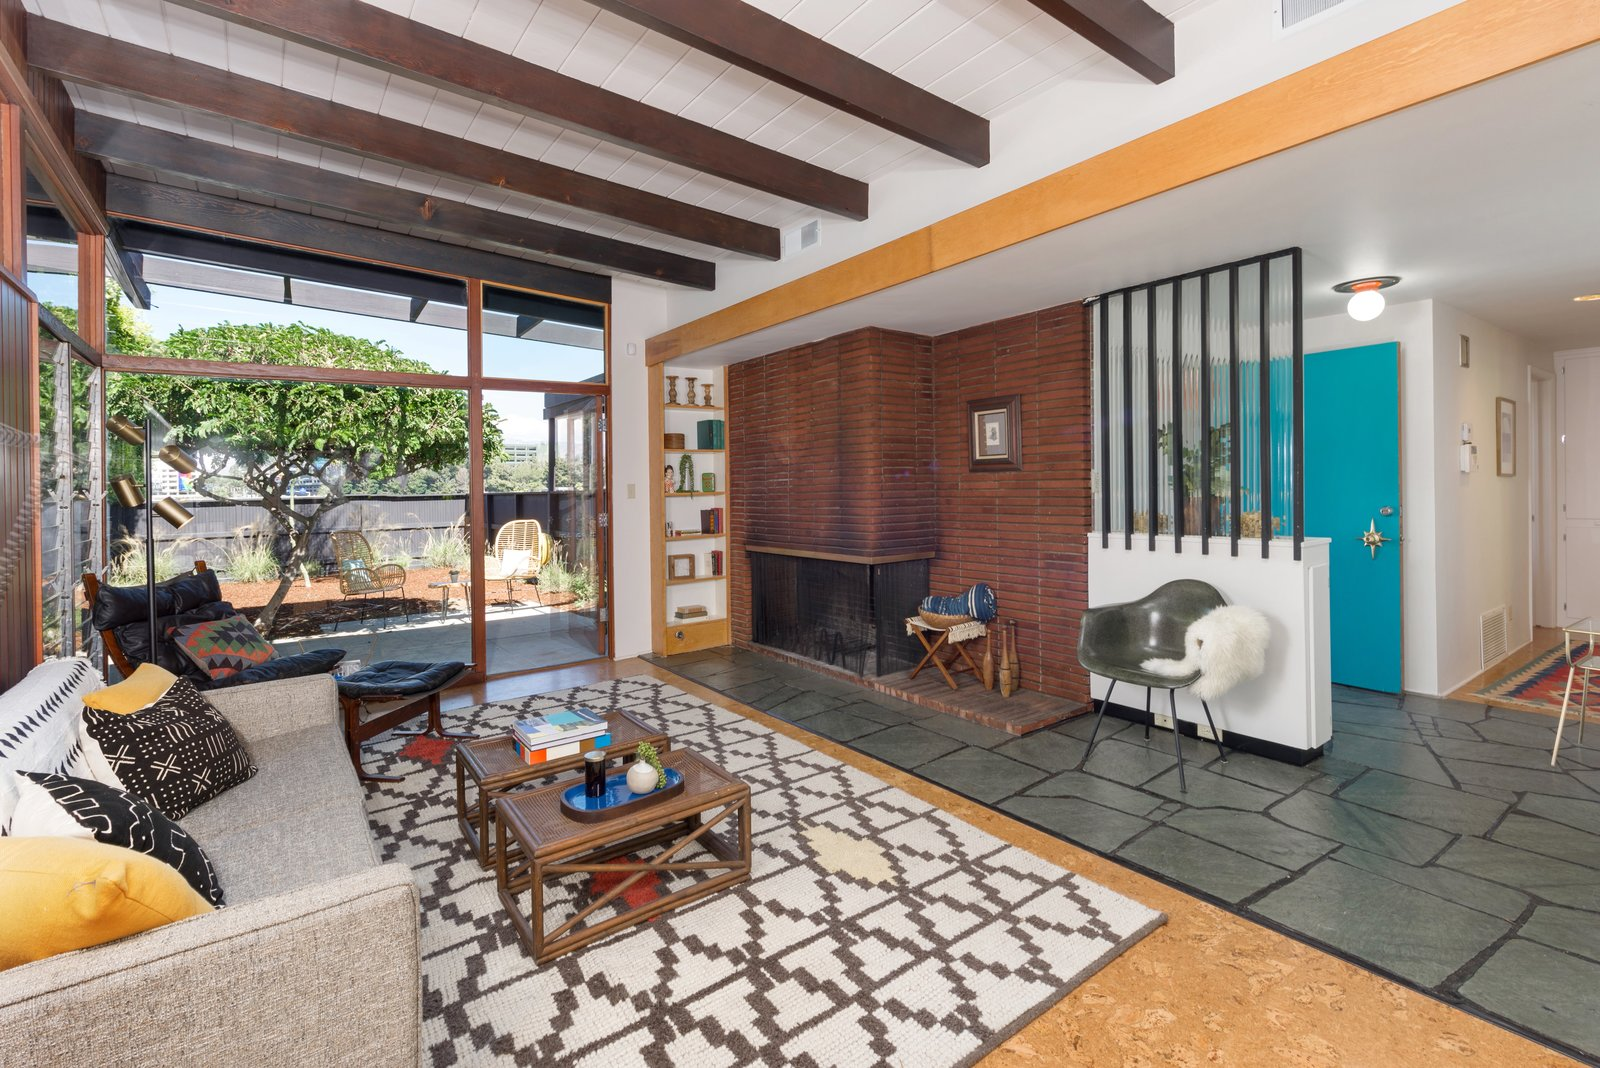 The open-plan living space is anchored by a horizontal brick-inlay fireplace.